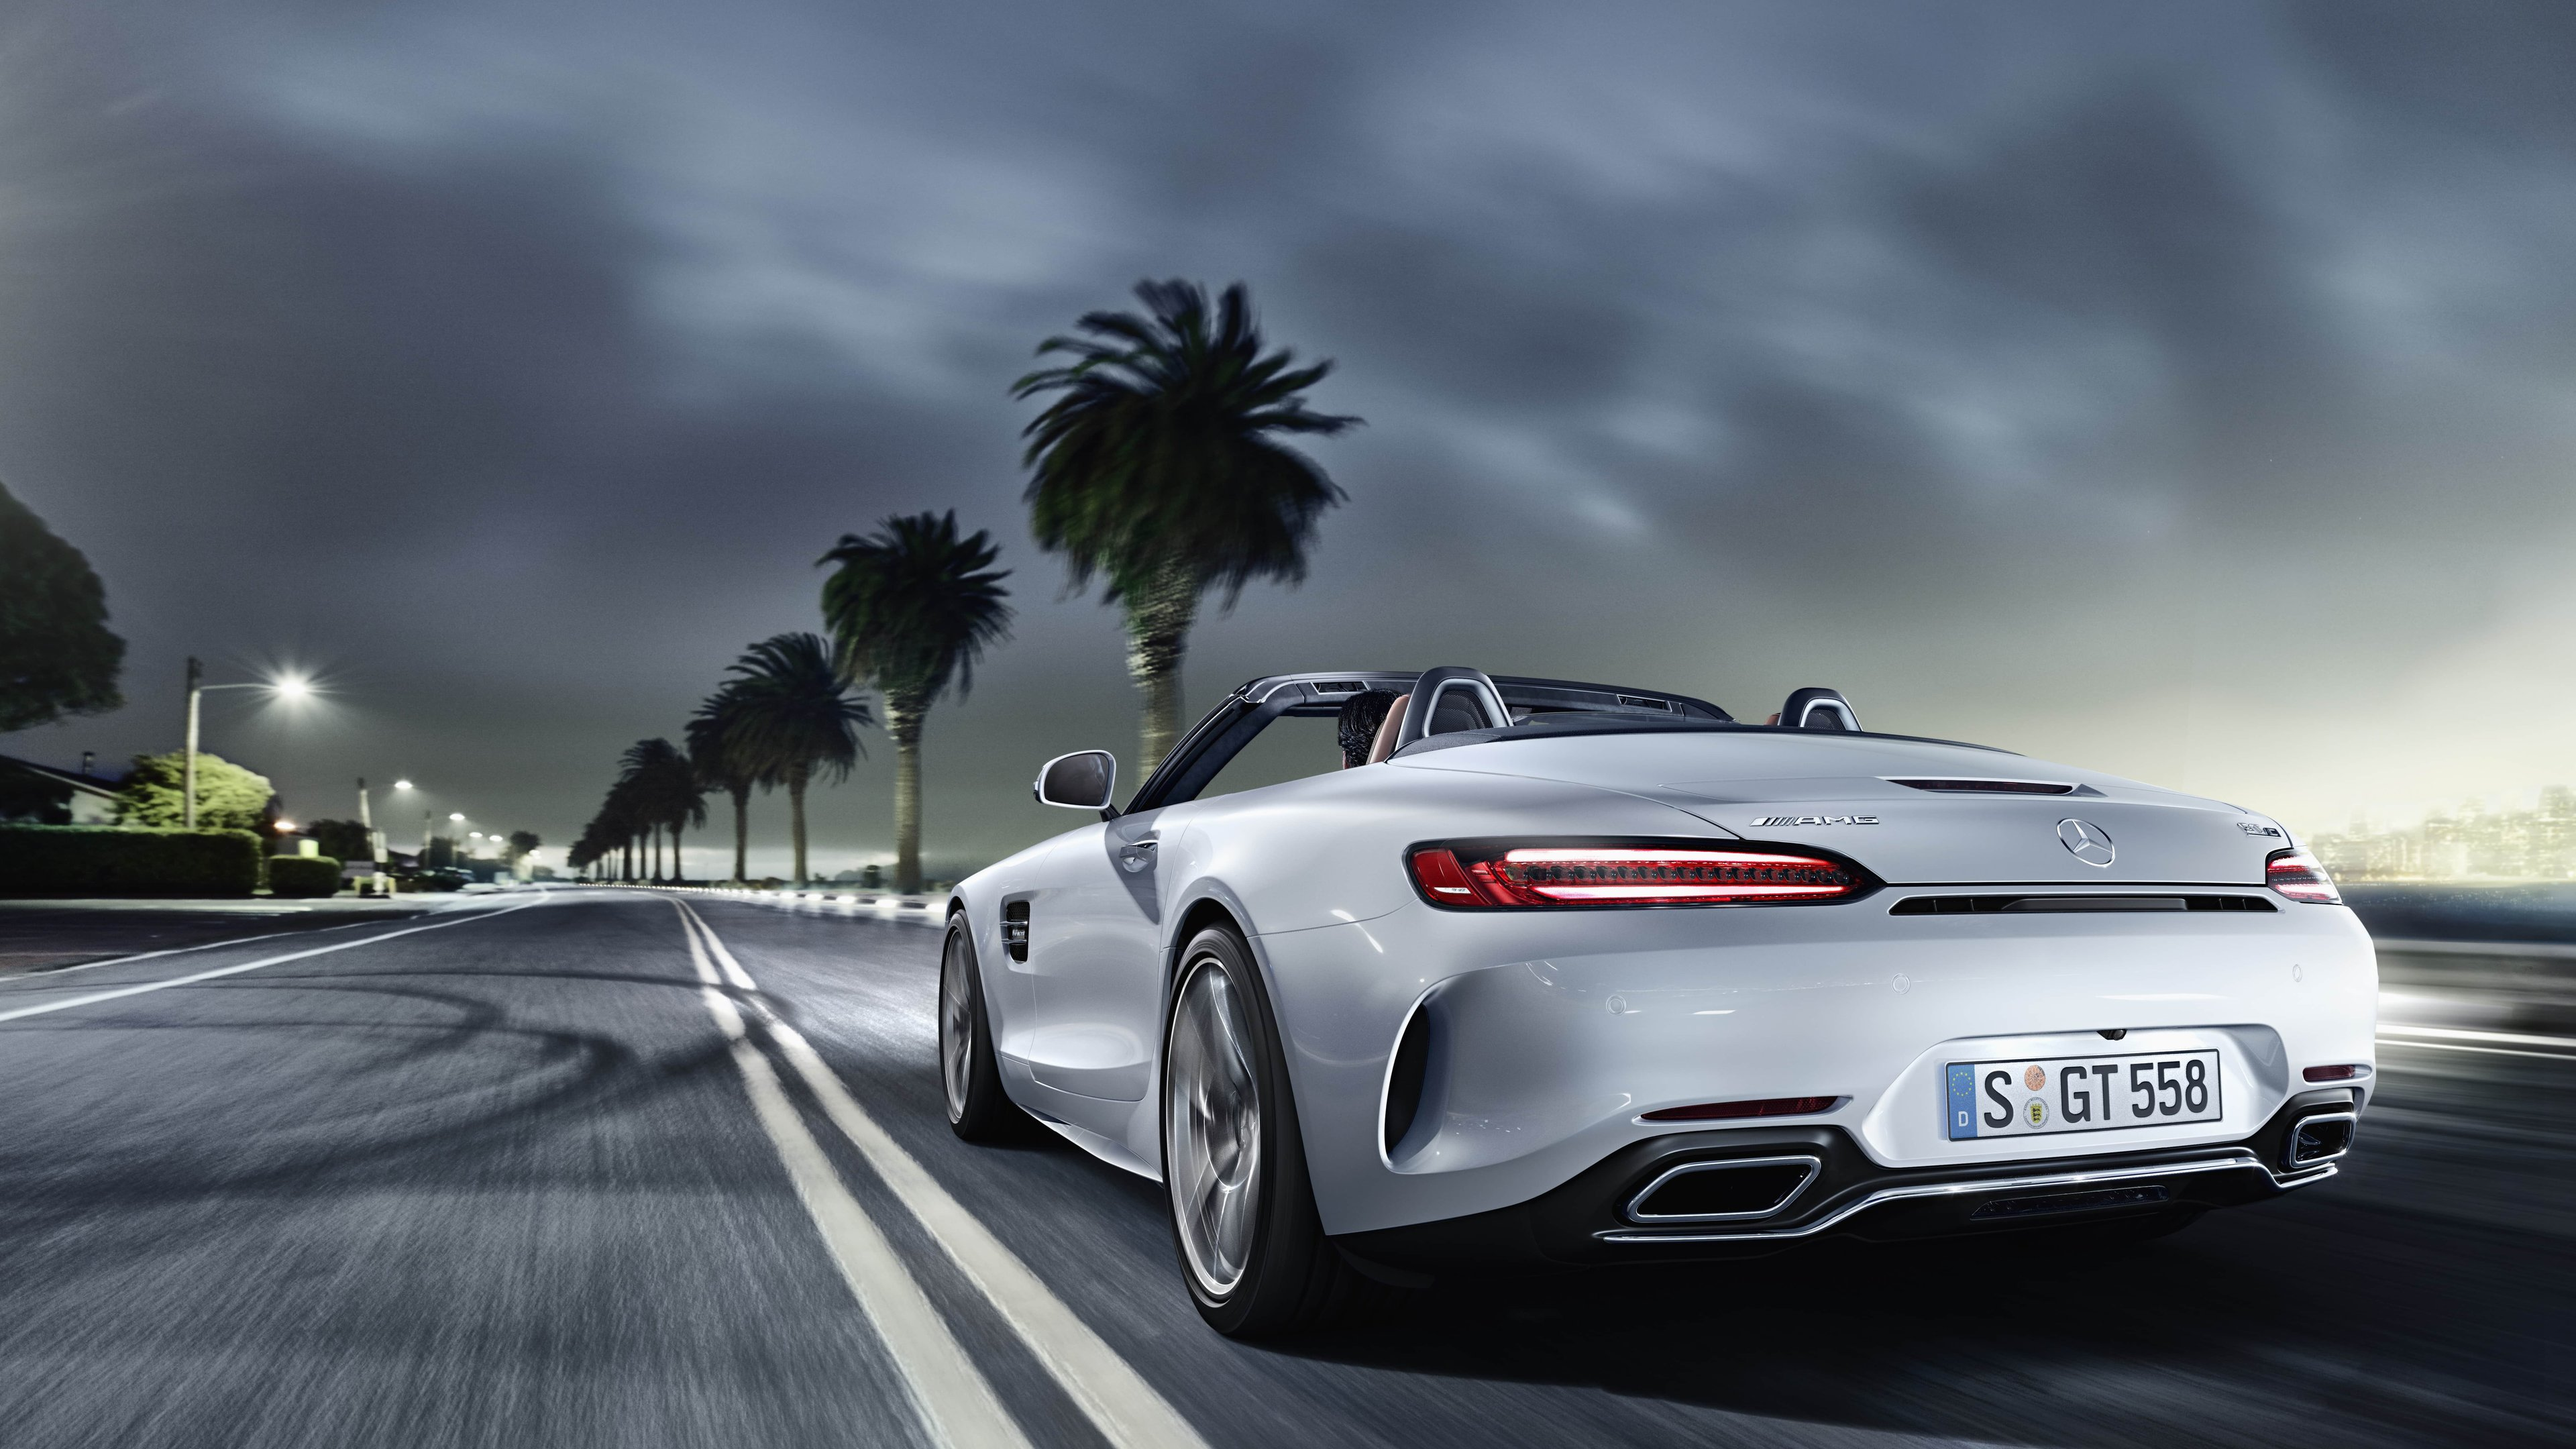 mercedes amg gt c roadster 1539105100 - Mercedes AMG GT C Roadster - mercedes wallpapers, mercedes amg wallpapers, hd-wallpapers, cars wallpapers, 8k wallpapers, 4k-wallpapers, 2017 cars wallpapers